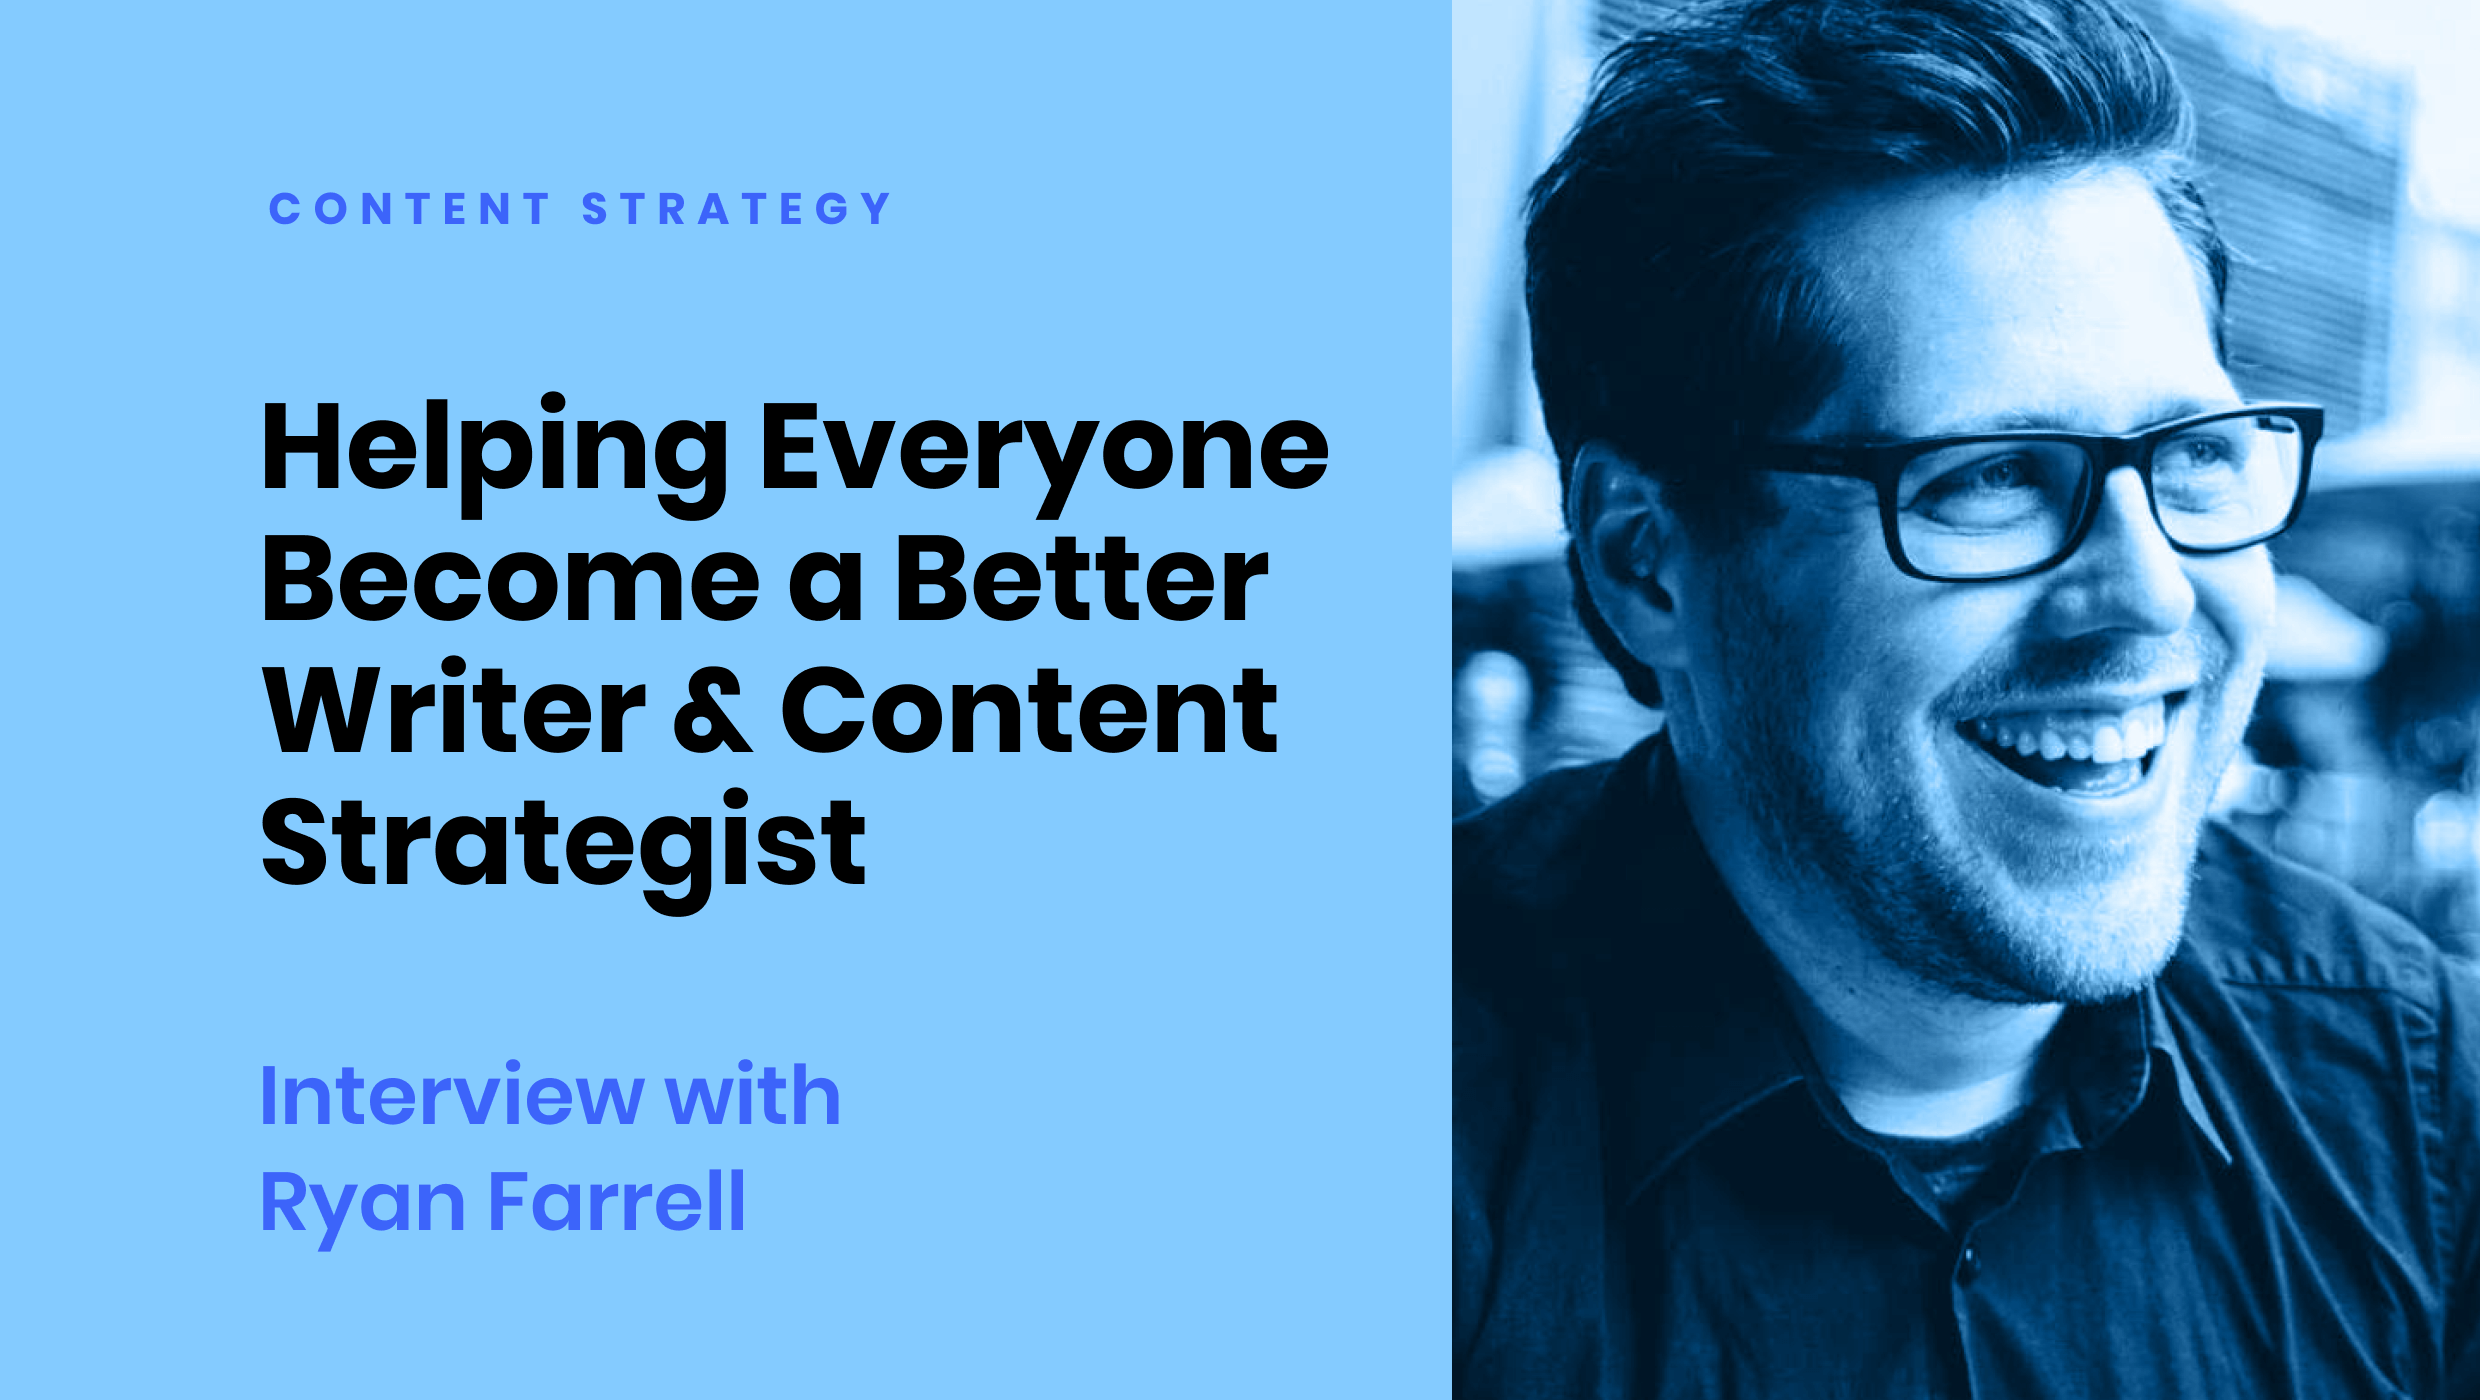 Helping everyone become a better writer and content strategist: interview with Ryan Farrell